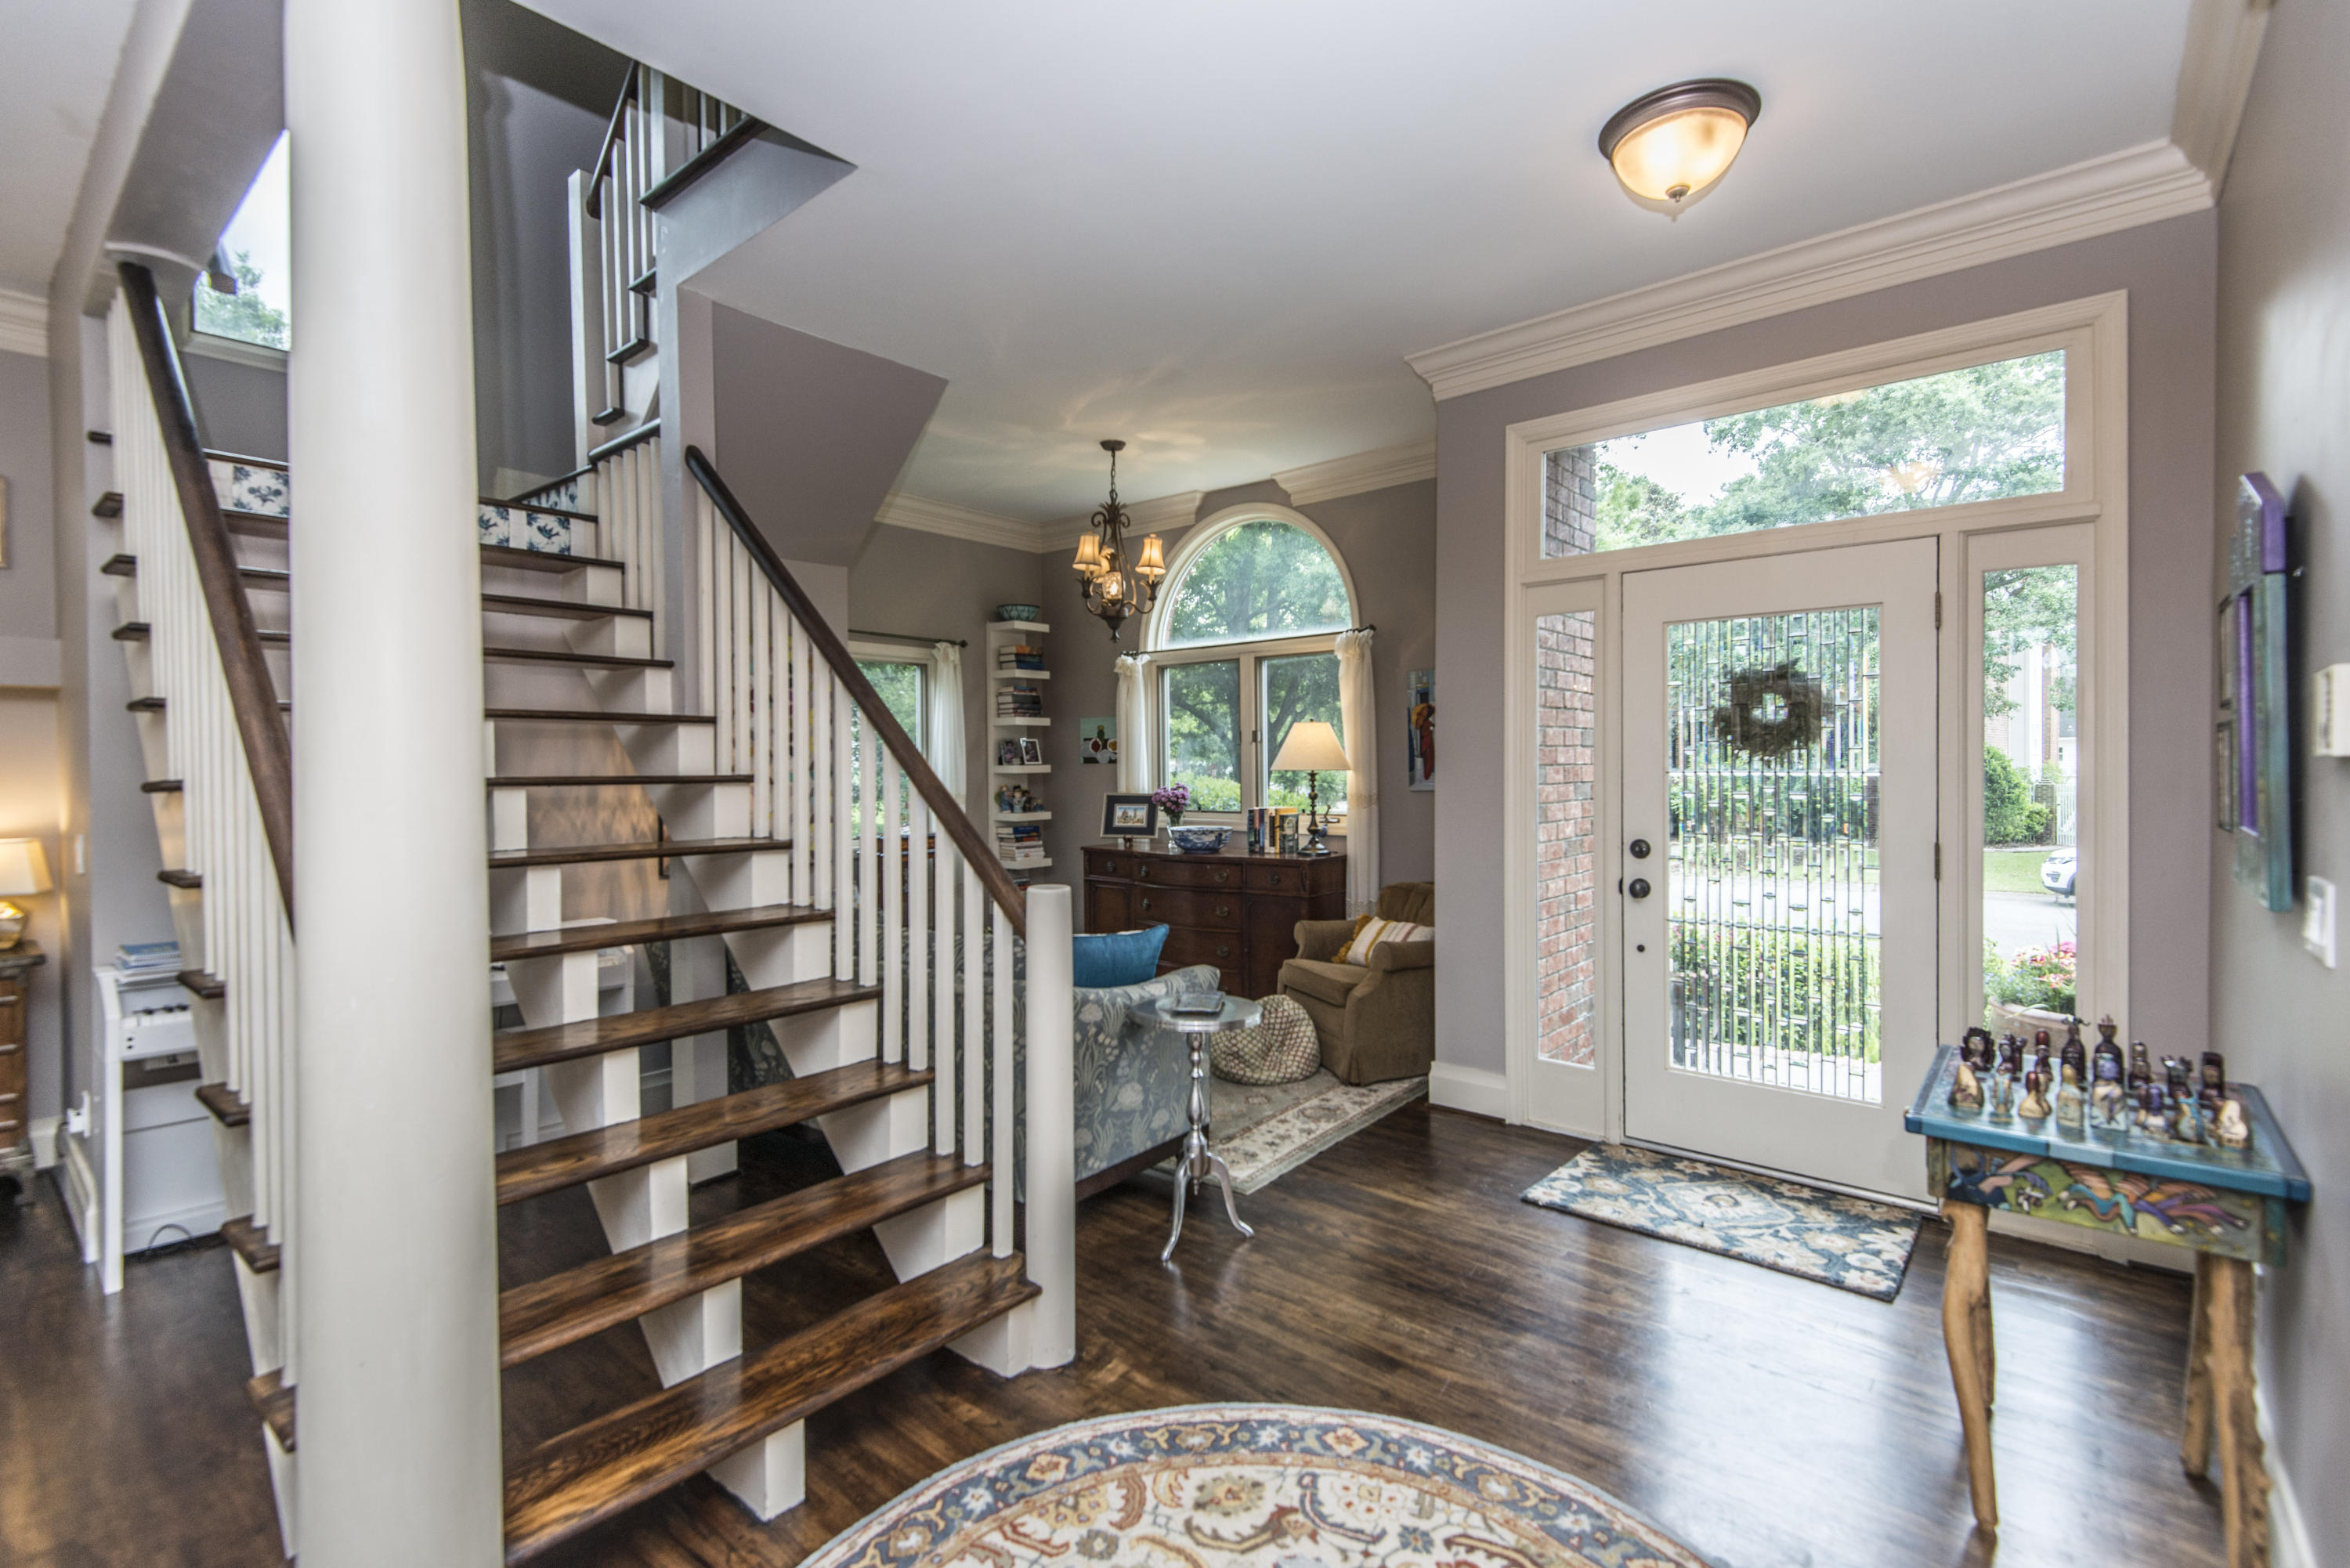 Stiles Point Plantation Homes For Sale - 921 Cotton House, Charleston, SC - 0